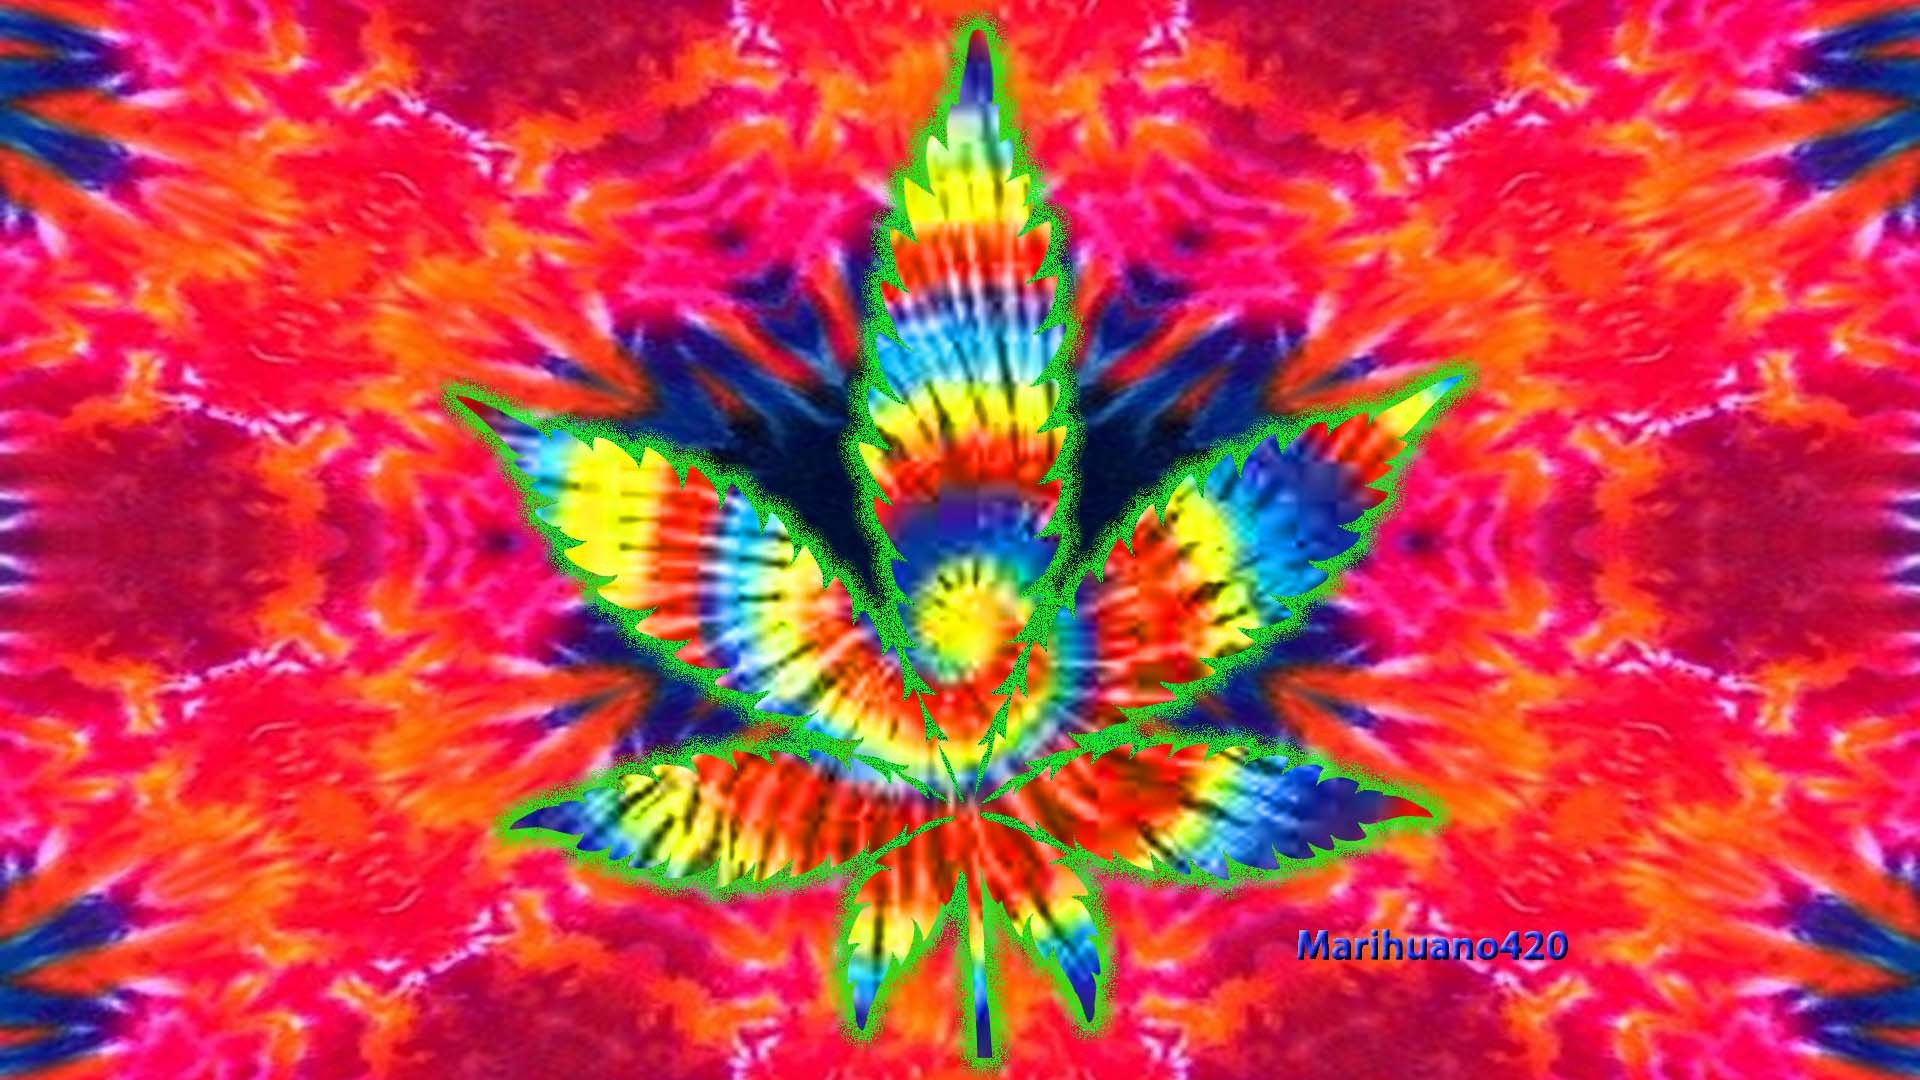 1920x1080 Hippie Wallpaper Weed, wallpaper, Hippie Wallpaper Weed hd wallpaper .